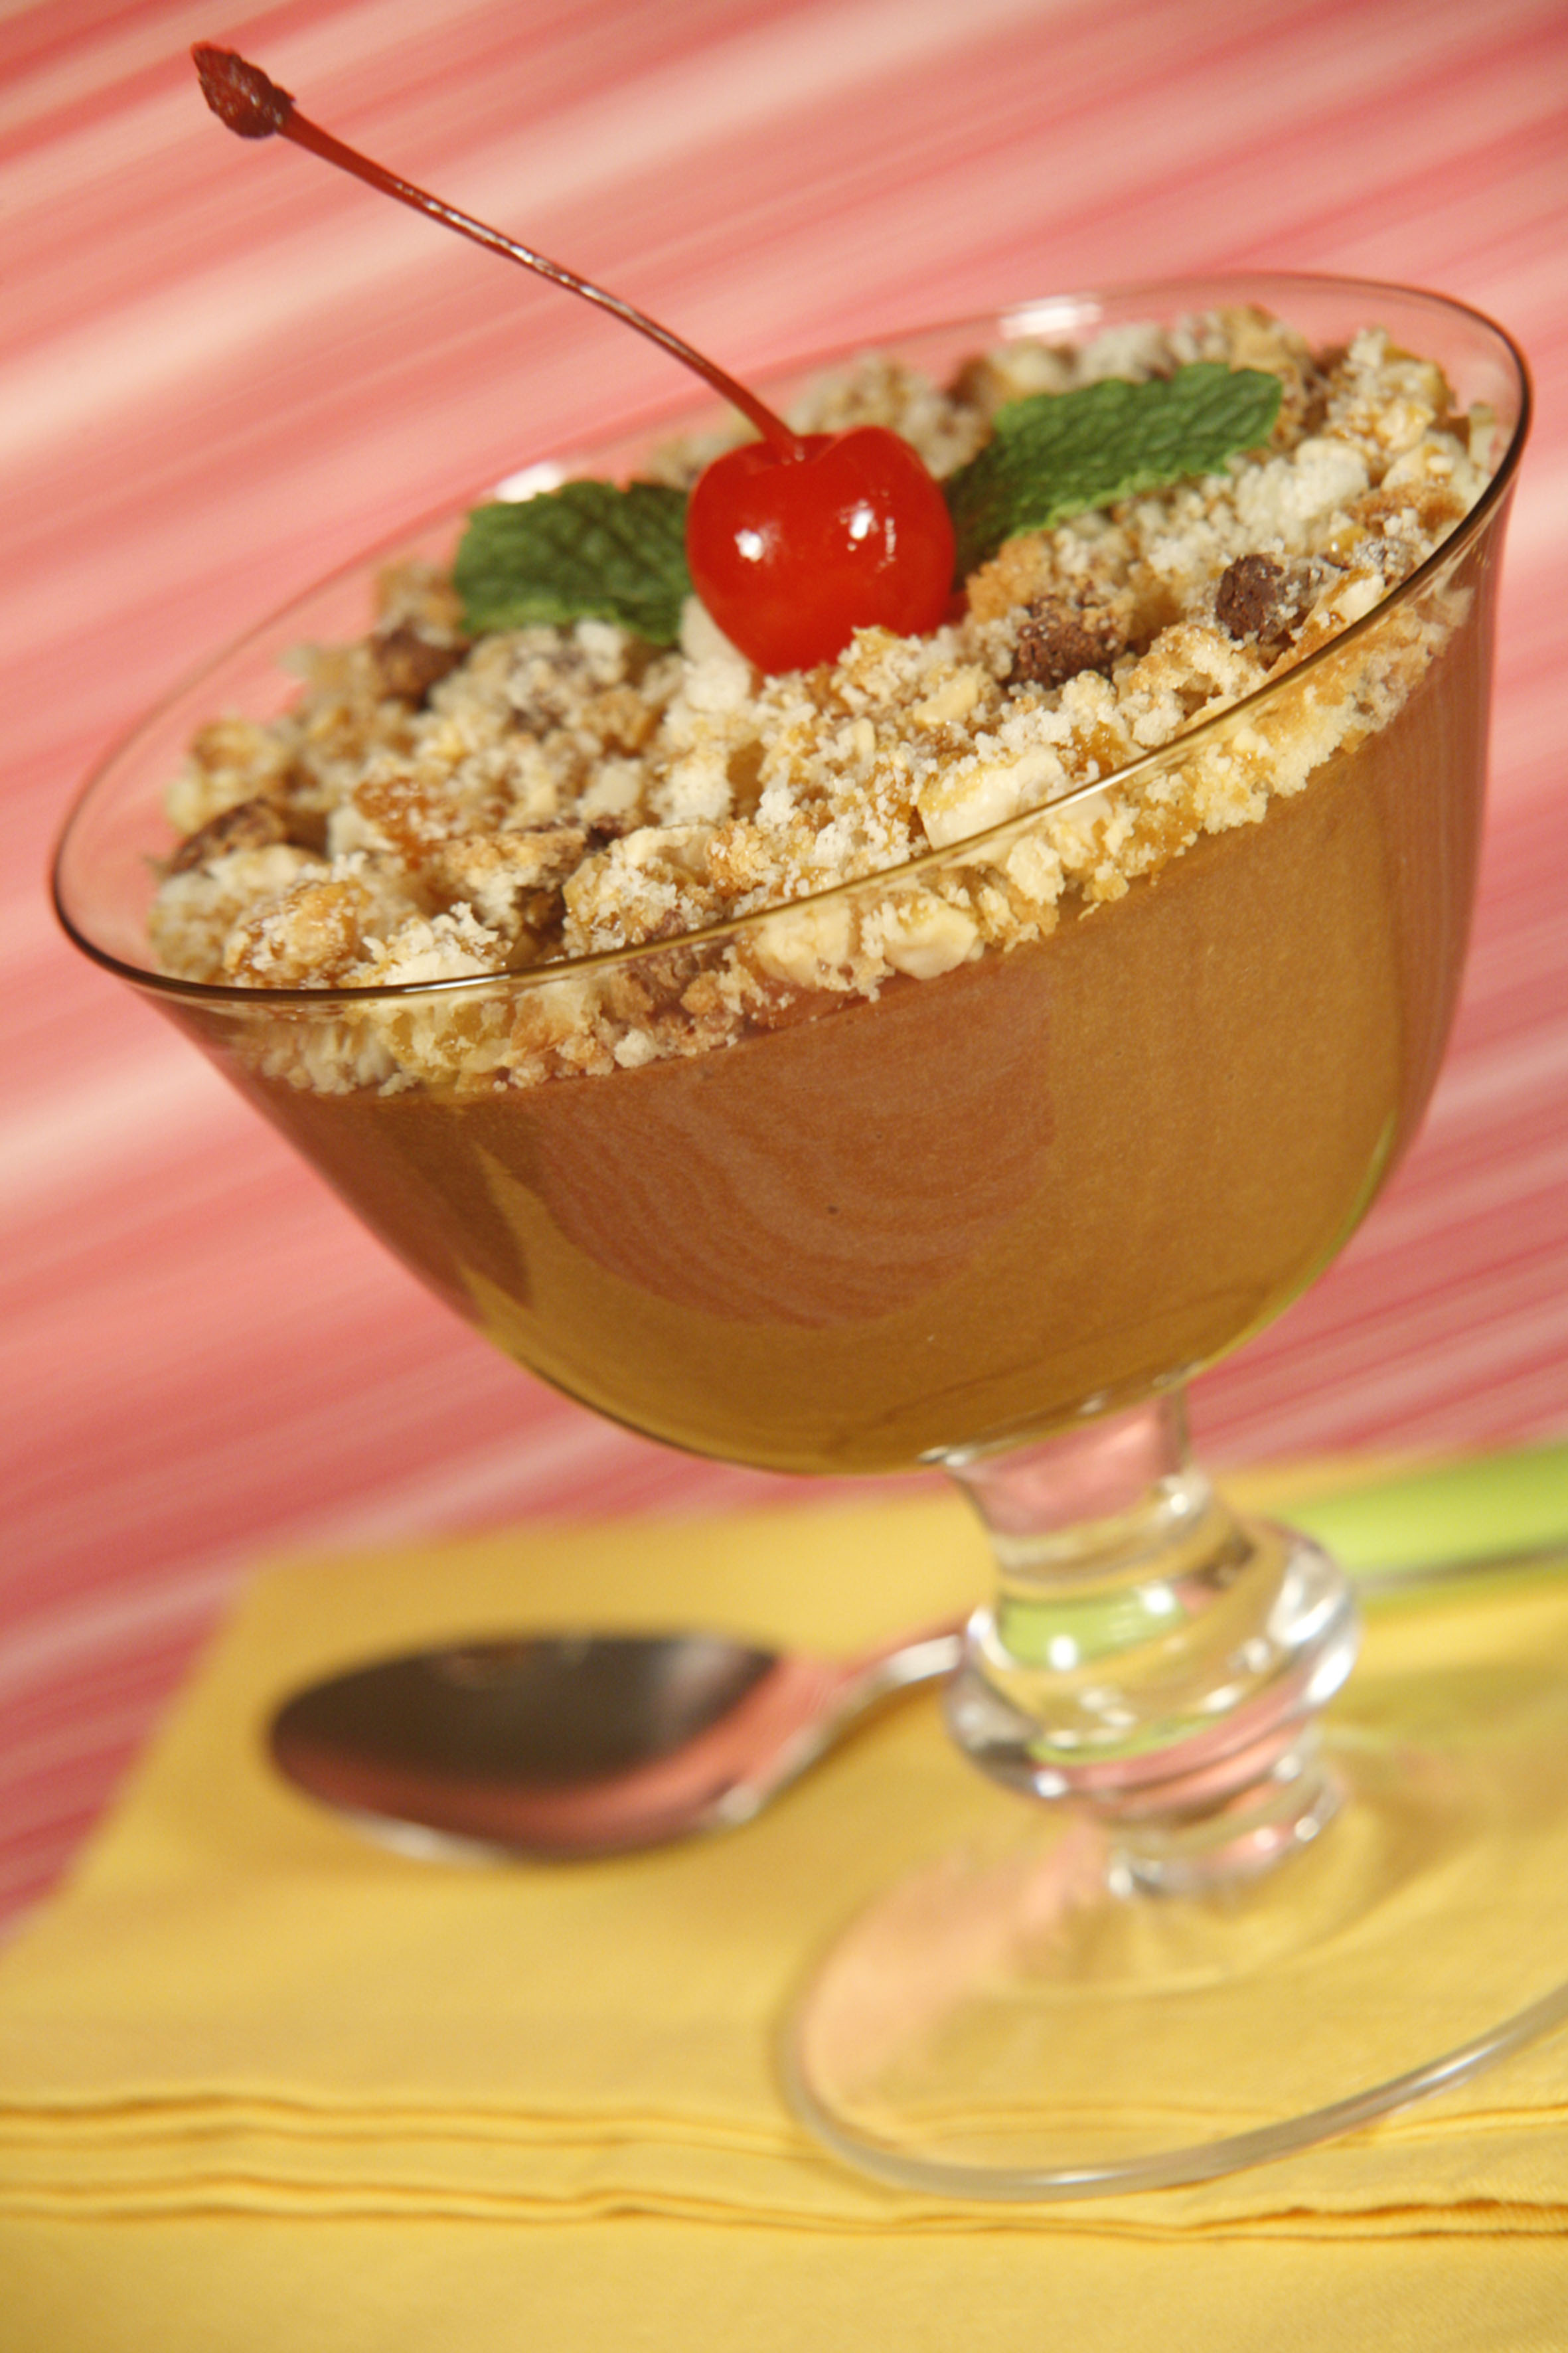 mousse-de-chocolate-com-farofa_b